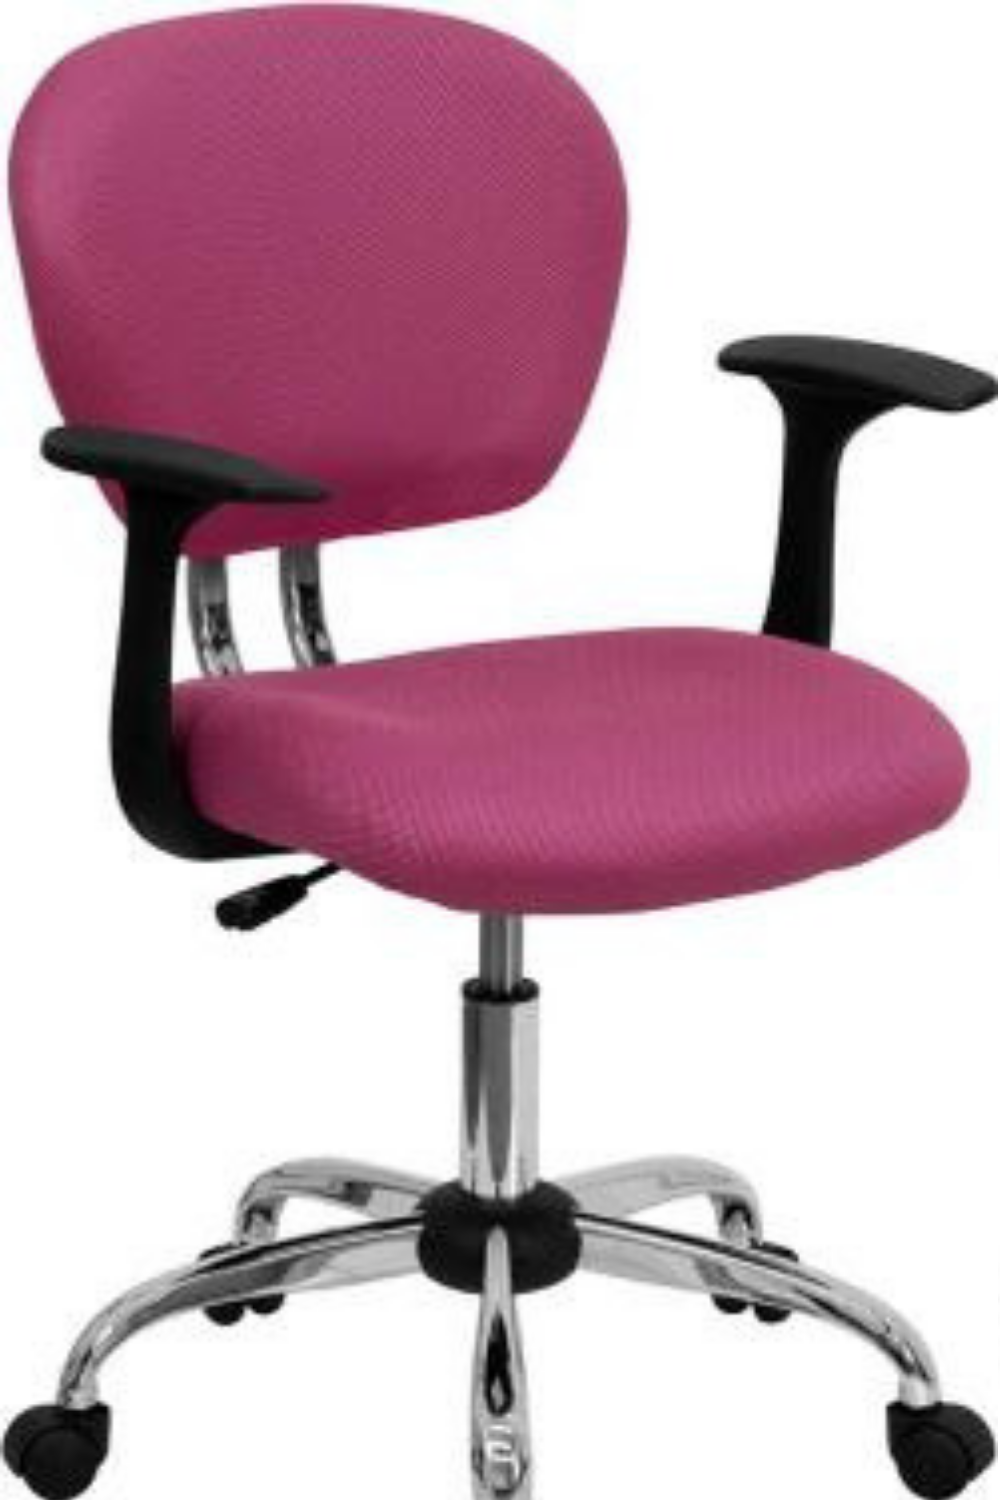 RoundUp The Best Pink Desk Chair